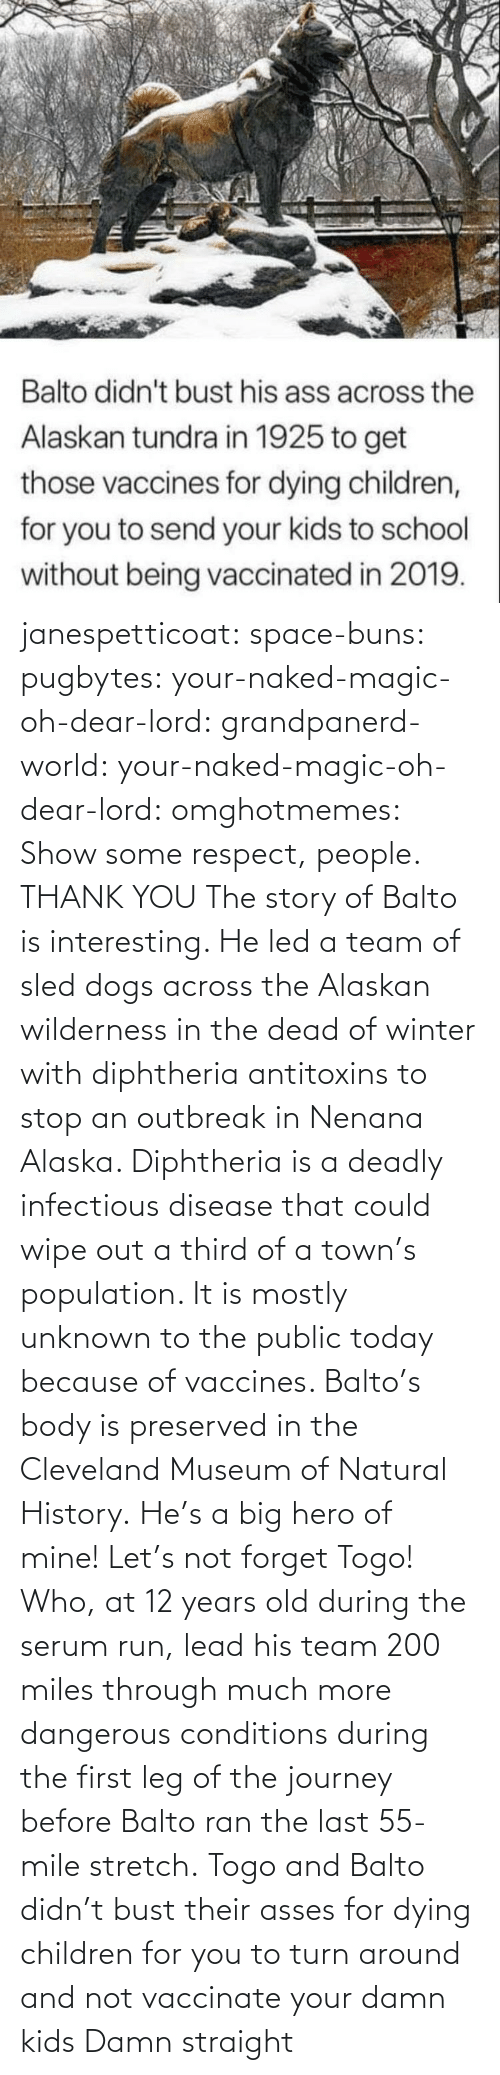 Children, Dogs, and Journey: janespetticoat: space-buns:  pugbytes:   your-naked-magic-oh-dear-lord:  grandpanerd-world:   your-naked-magic-oh-dear-lord:  omghotmemes: Show some respect, people.  THANK YOU   The story of Balto is interesting. He led a team of sled dogs across the Alaskan wilderness in the dead of winter with diphtheria antitoxins to stop an outbreak in Nenana Alaska. Diphtheria is a deadly infectious disease that could wipe out a third of a town's population. It is mostly unknown to the public today because of vaccines. Balto's body is preserved in the Cleveland Museum of Natural History.   He's a big hero of mine!   Let's not forget Togo! Who, at 12 years old during the serum run, lead his team 200 miles through much more dangerous conditions during the first leg of the journey before Balto ran the last 55-mile stretch.   Togo and Balto didn't bust their asses for dying children for you to turn around and not vaccinate your damn kids    Damn straight